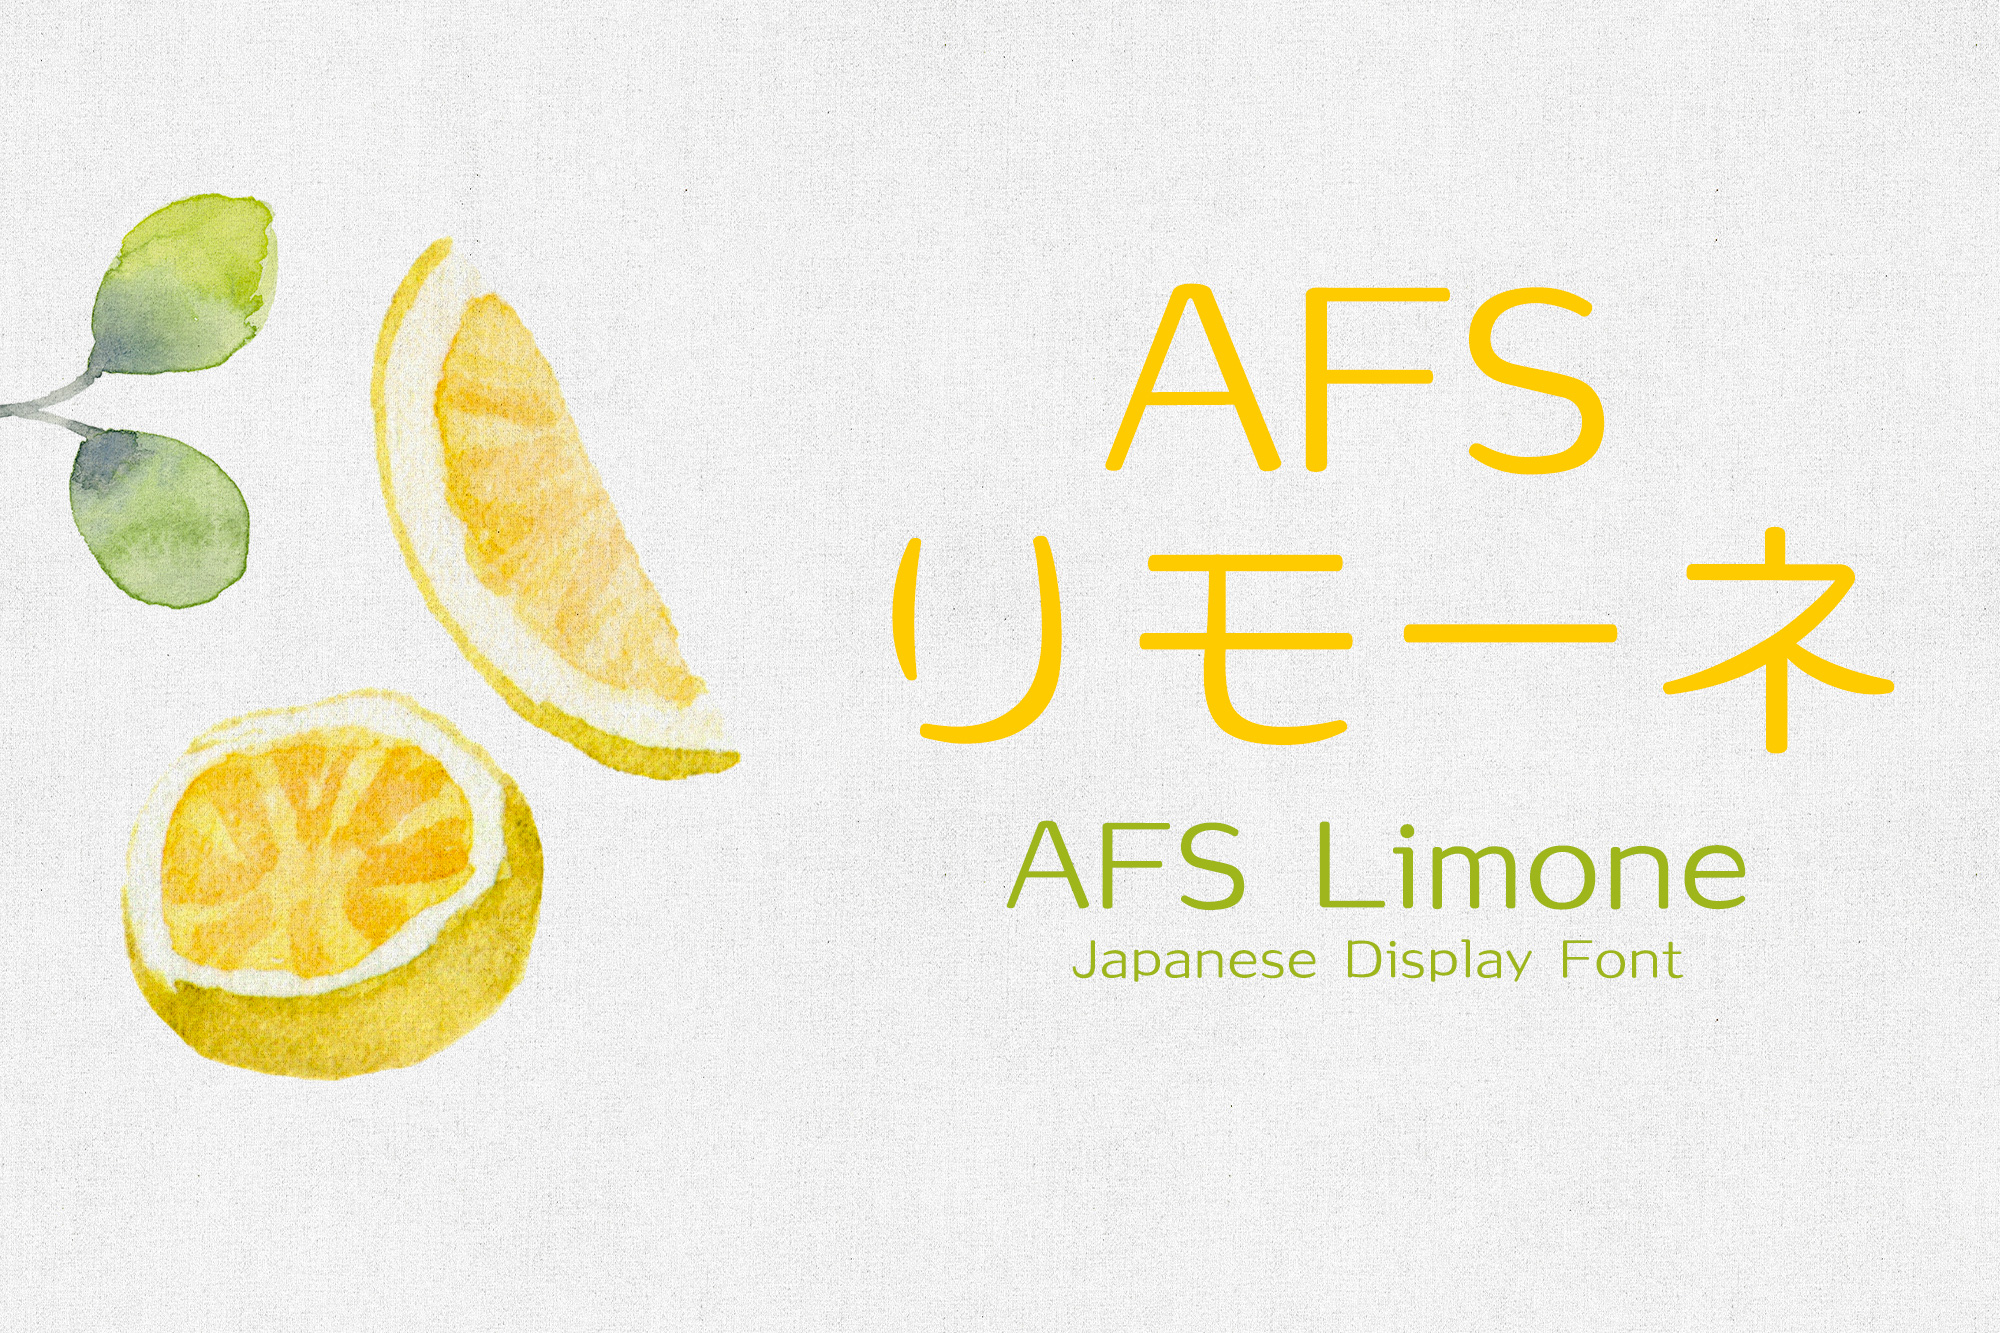 AFS Limone